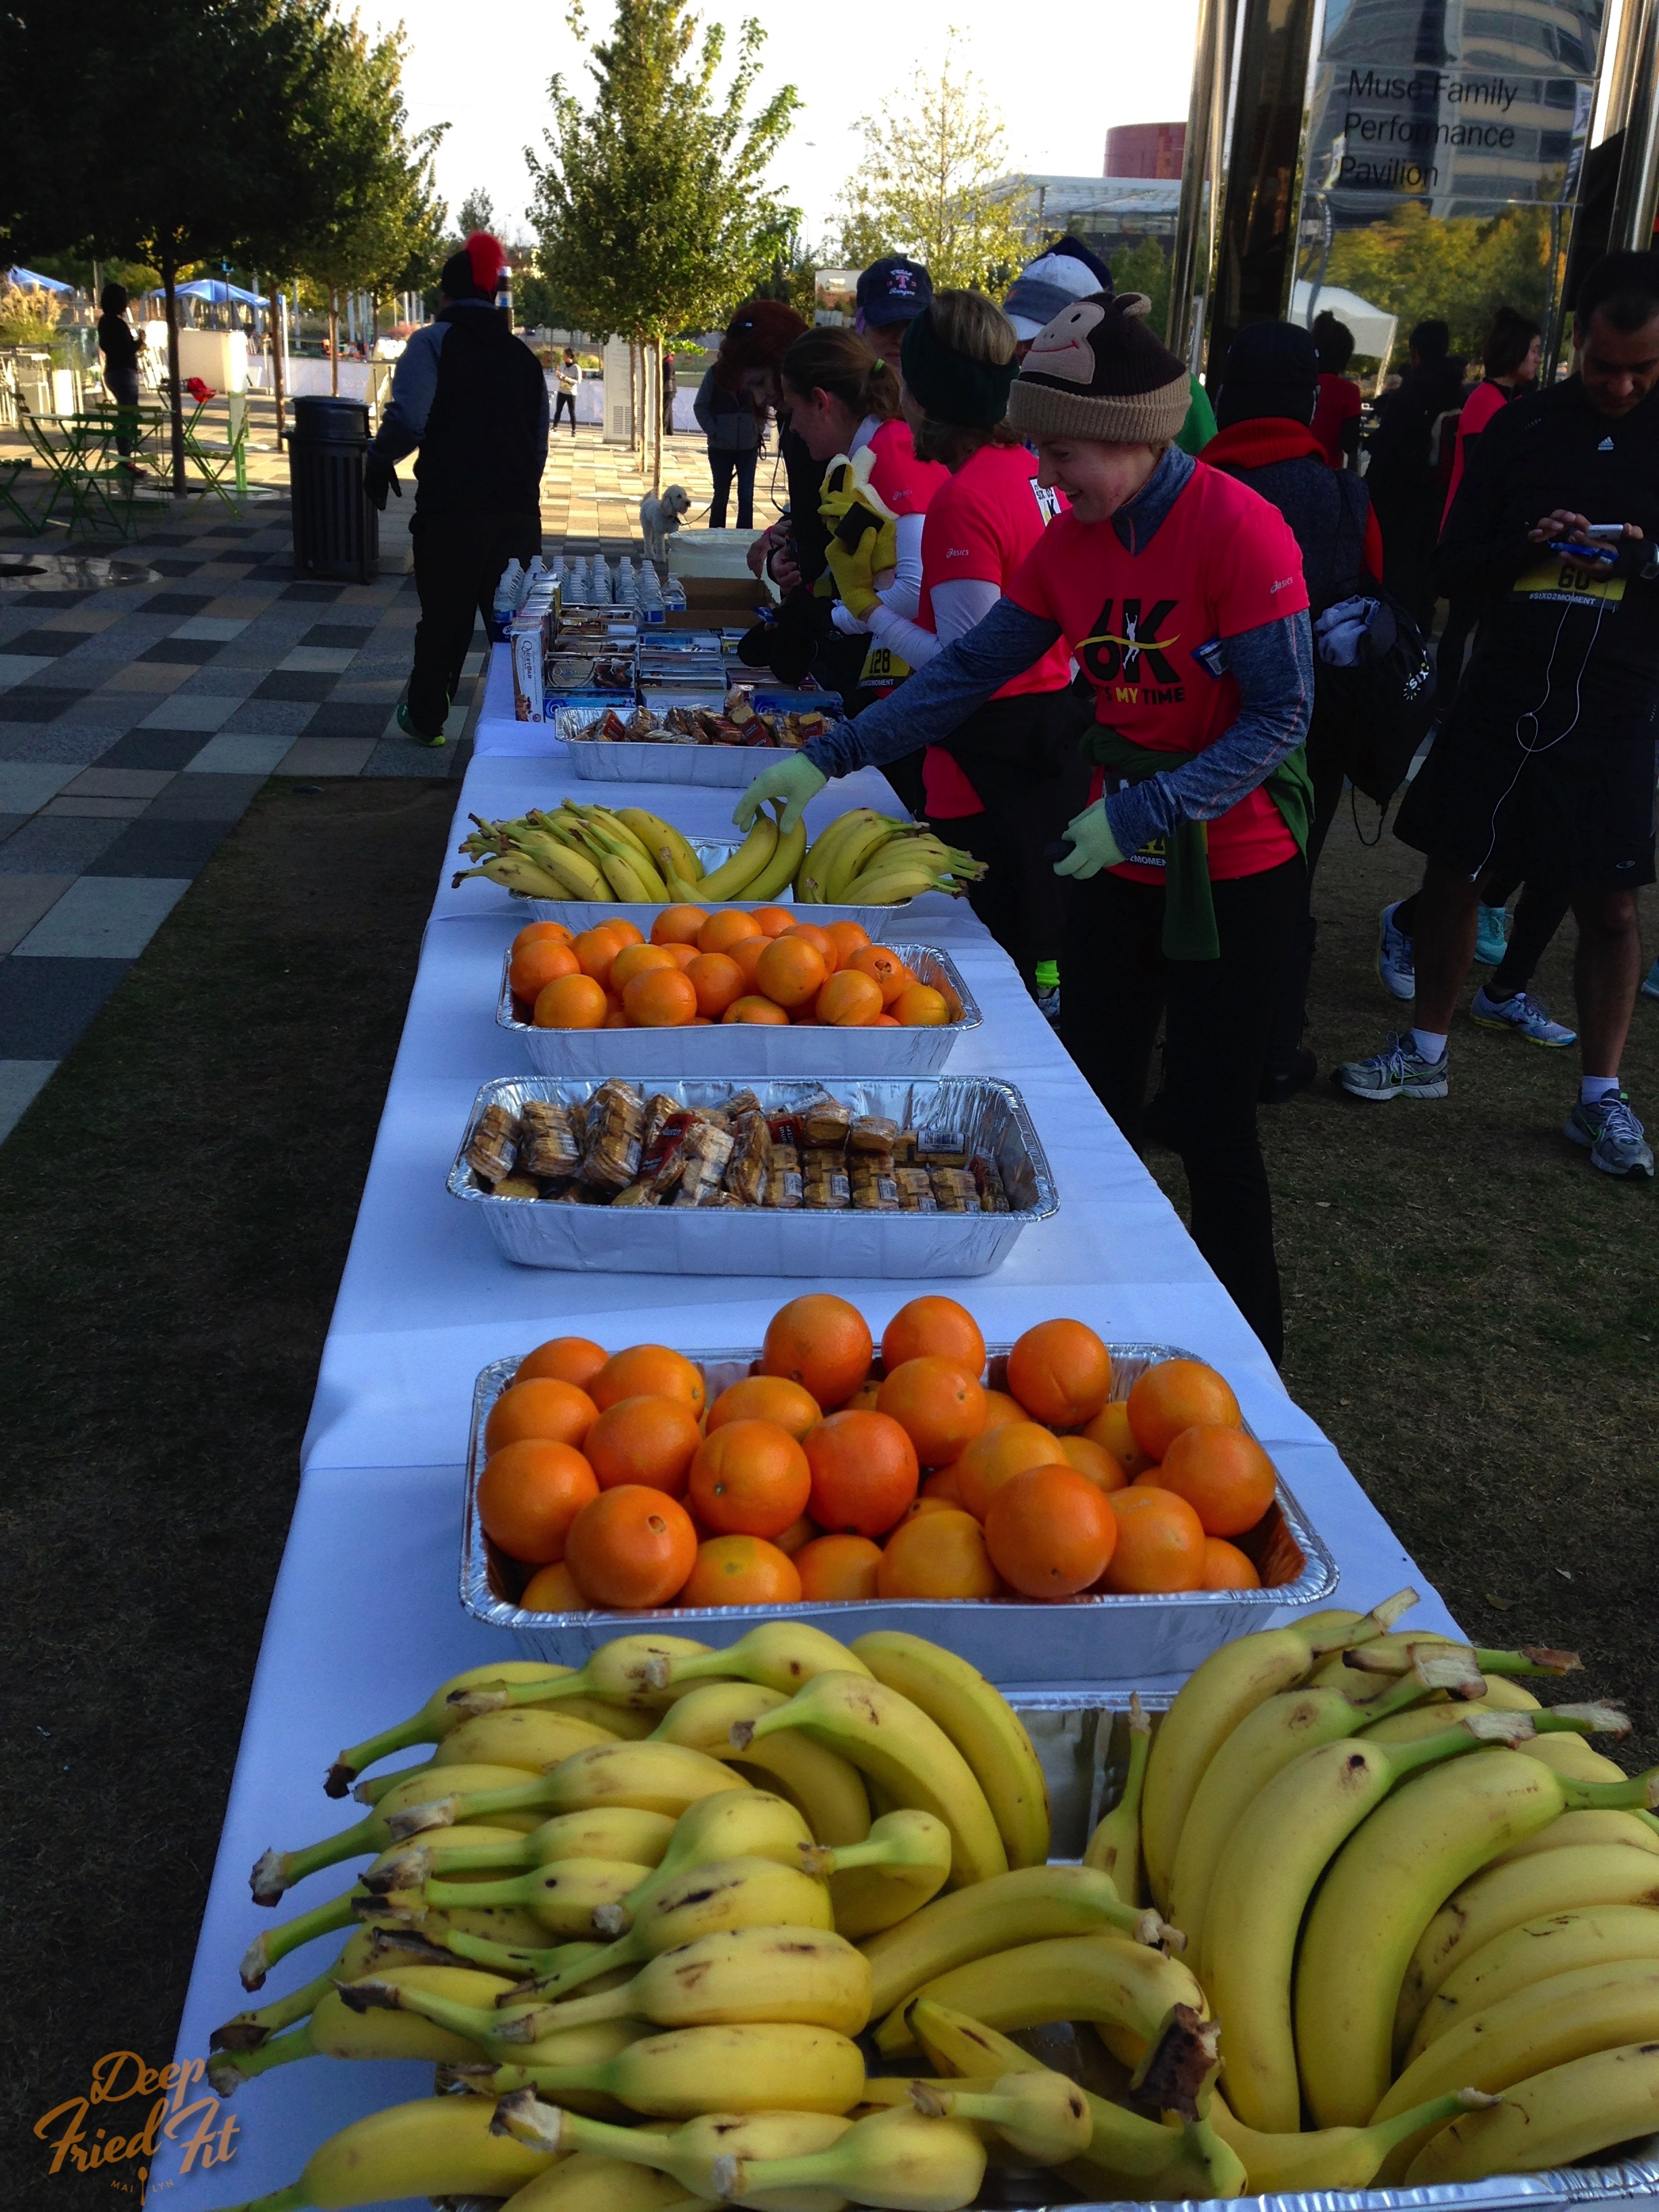 Time to refuel with oranges, bananas, quest bars, and hot chocolate!